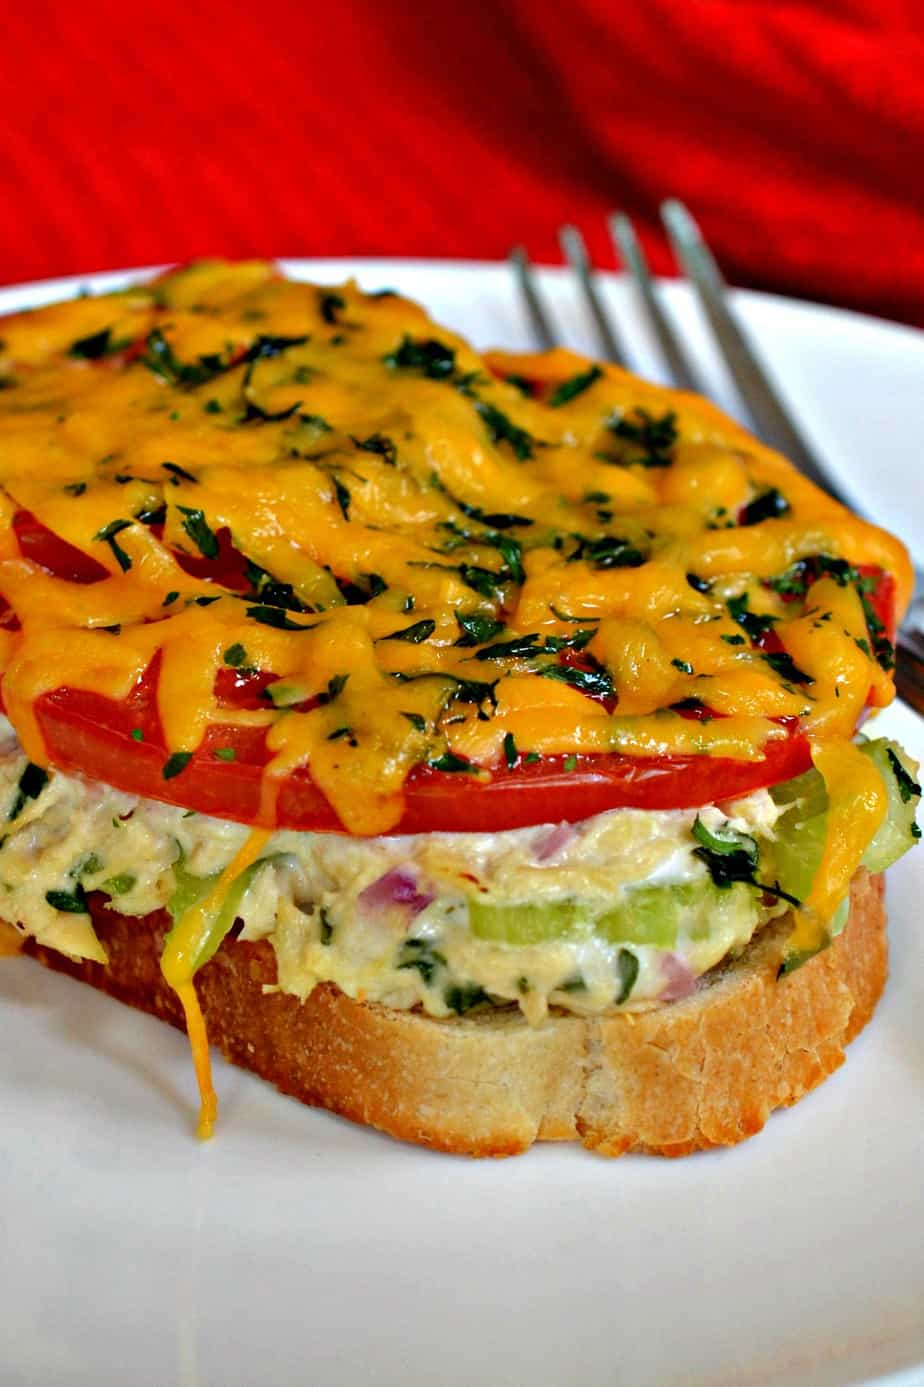 A Tuna Melt is a an open faced sandwich piled with creamy tuna salad, fresh sun ripened tomatoes and tasty cheddar cheese.